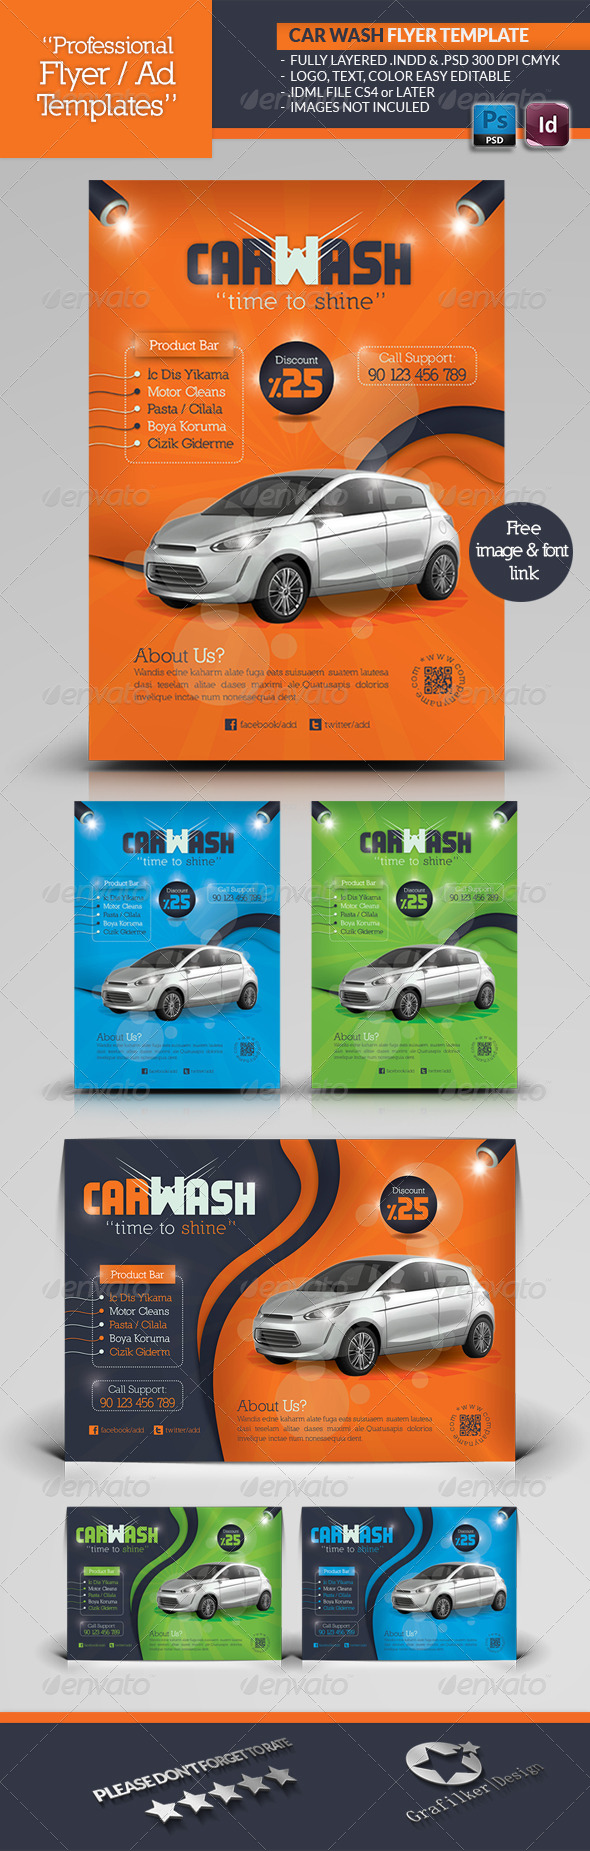 car wash flyer template graphicriver. Black Bedroom Furniture Sets. Home Design Ideas